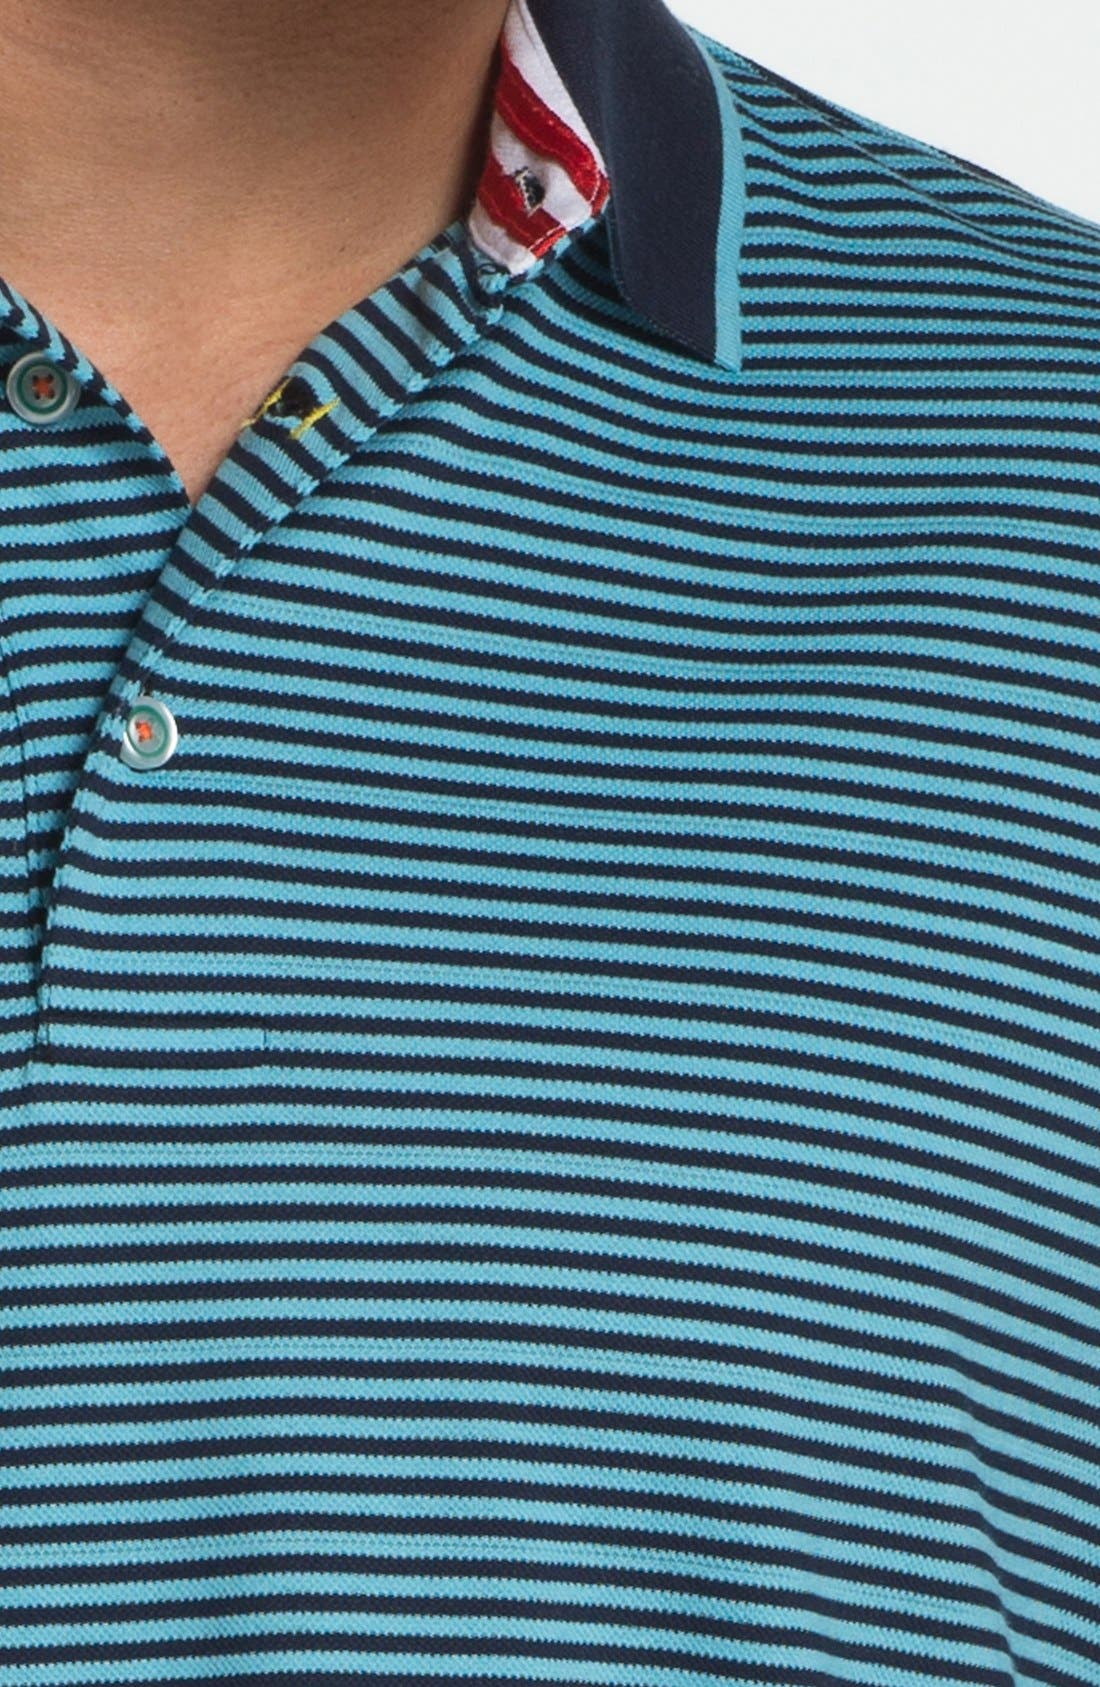 Alternate Image 3  - Robert Graham 'Barcelo' Knit Polo